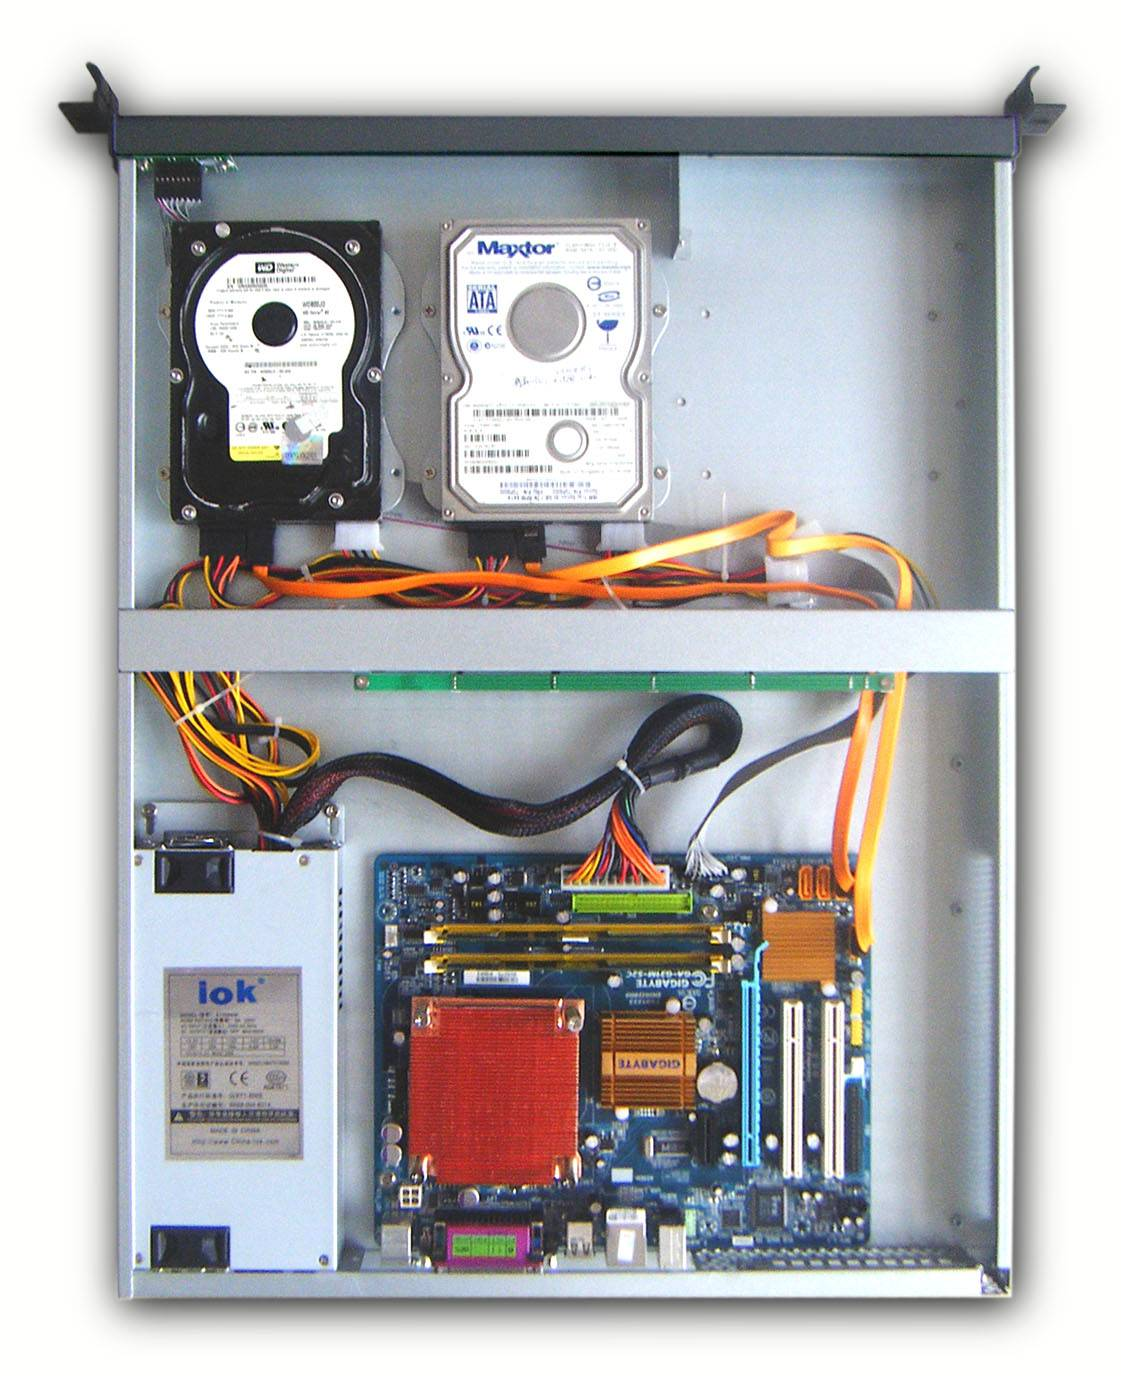 S1290 Rackmount chassis